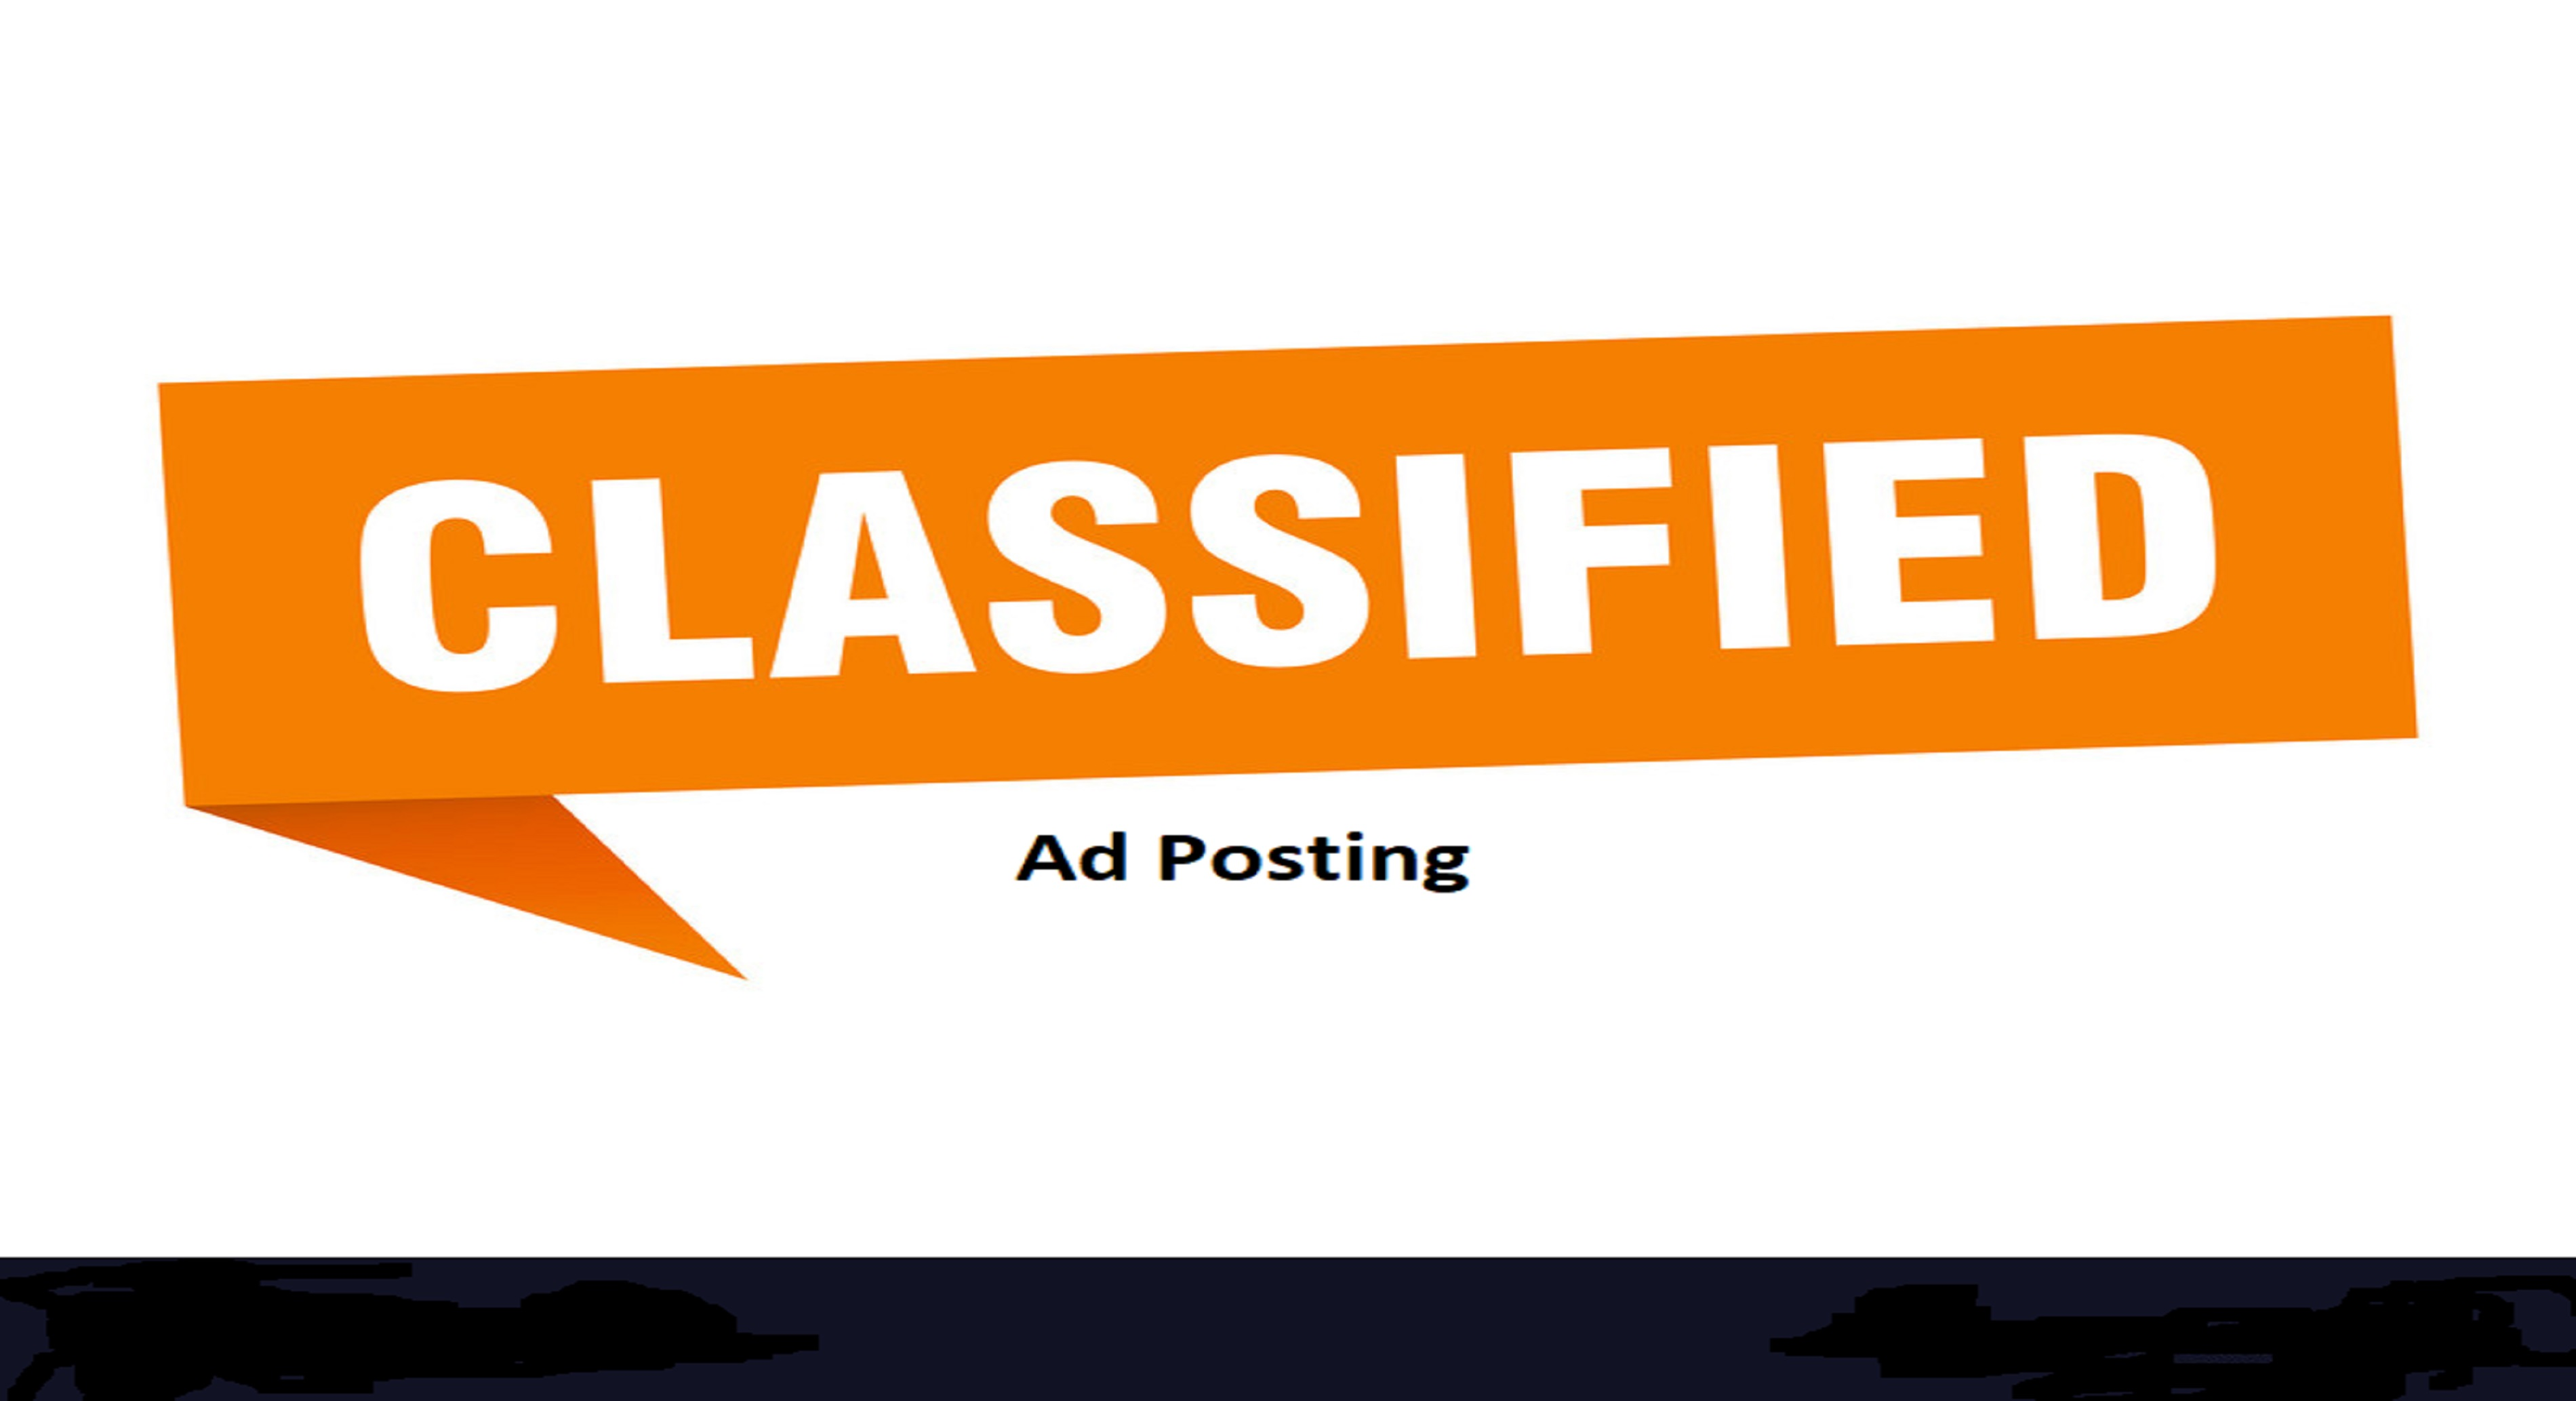 I can do 50 classified ad posting for top ranking sites with seo backlinks